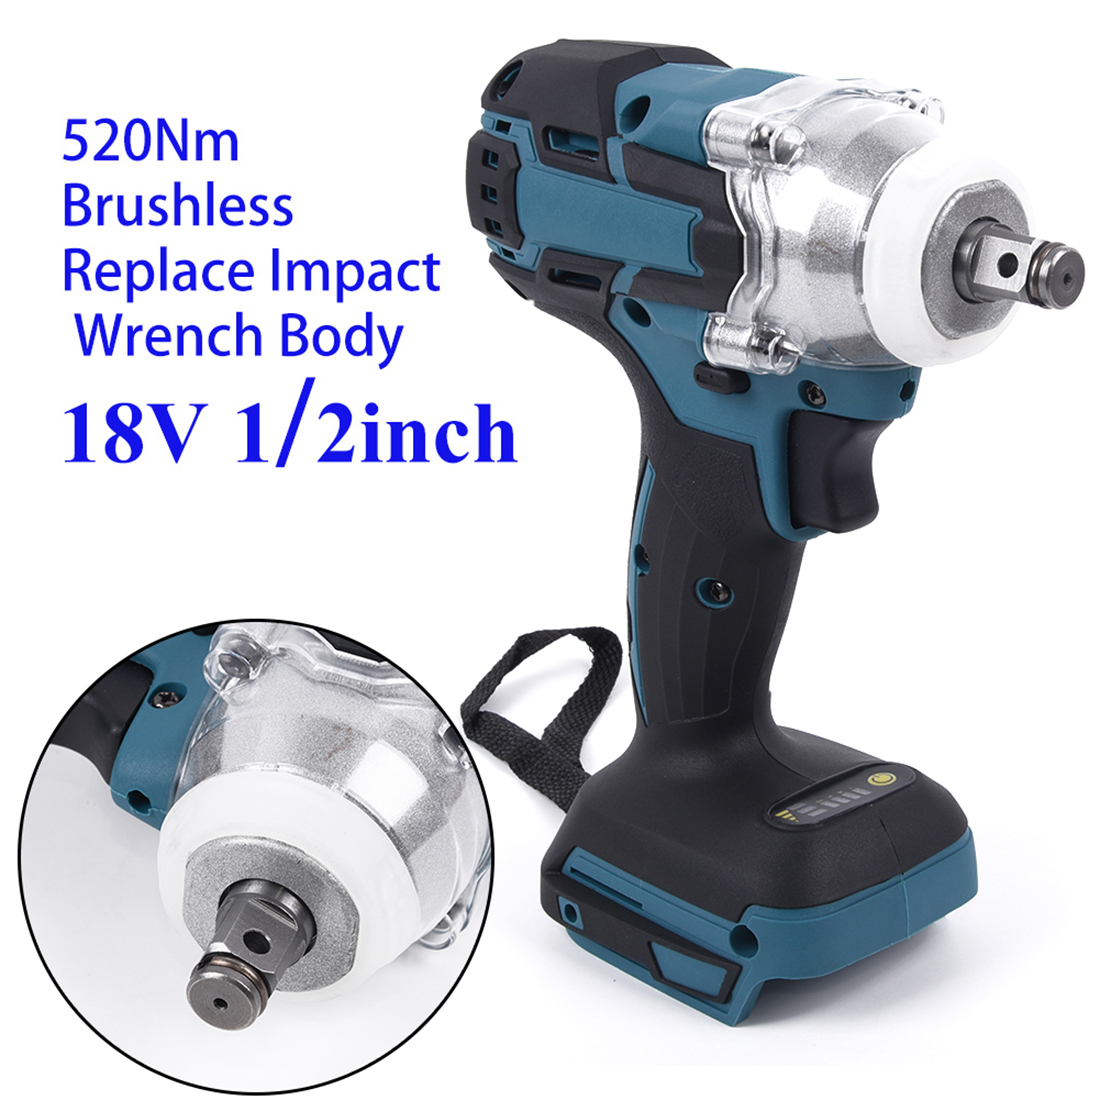 Torque Impact Wrench Brushless Cordless Replacement For Battery 18V 520NM